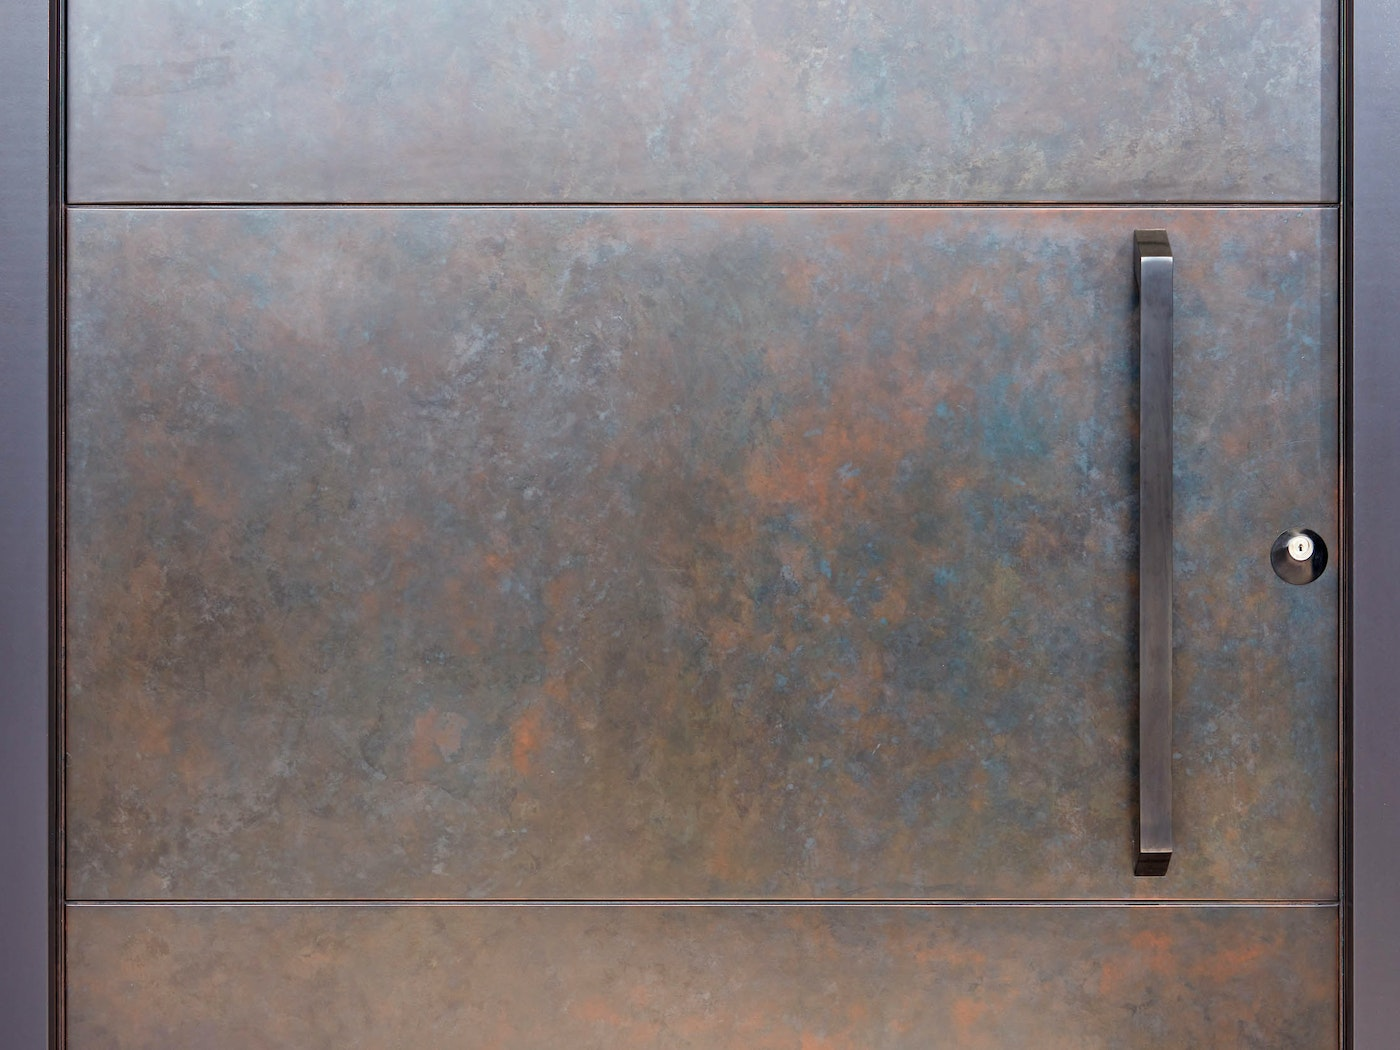 This close-up shows some of the unique variations of the metallic finish, with multiple tones working beautifully together